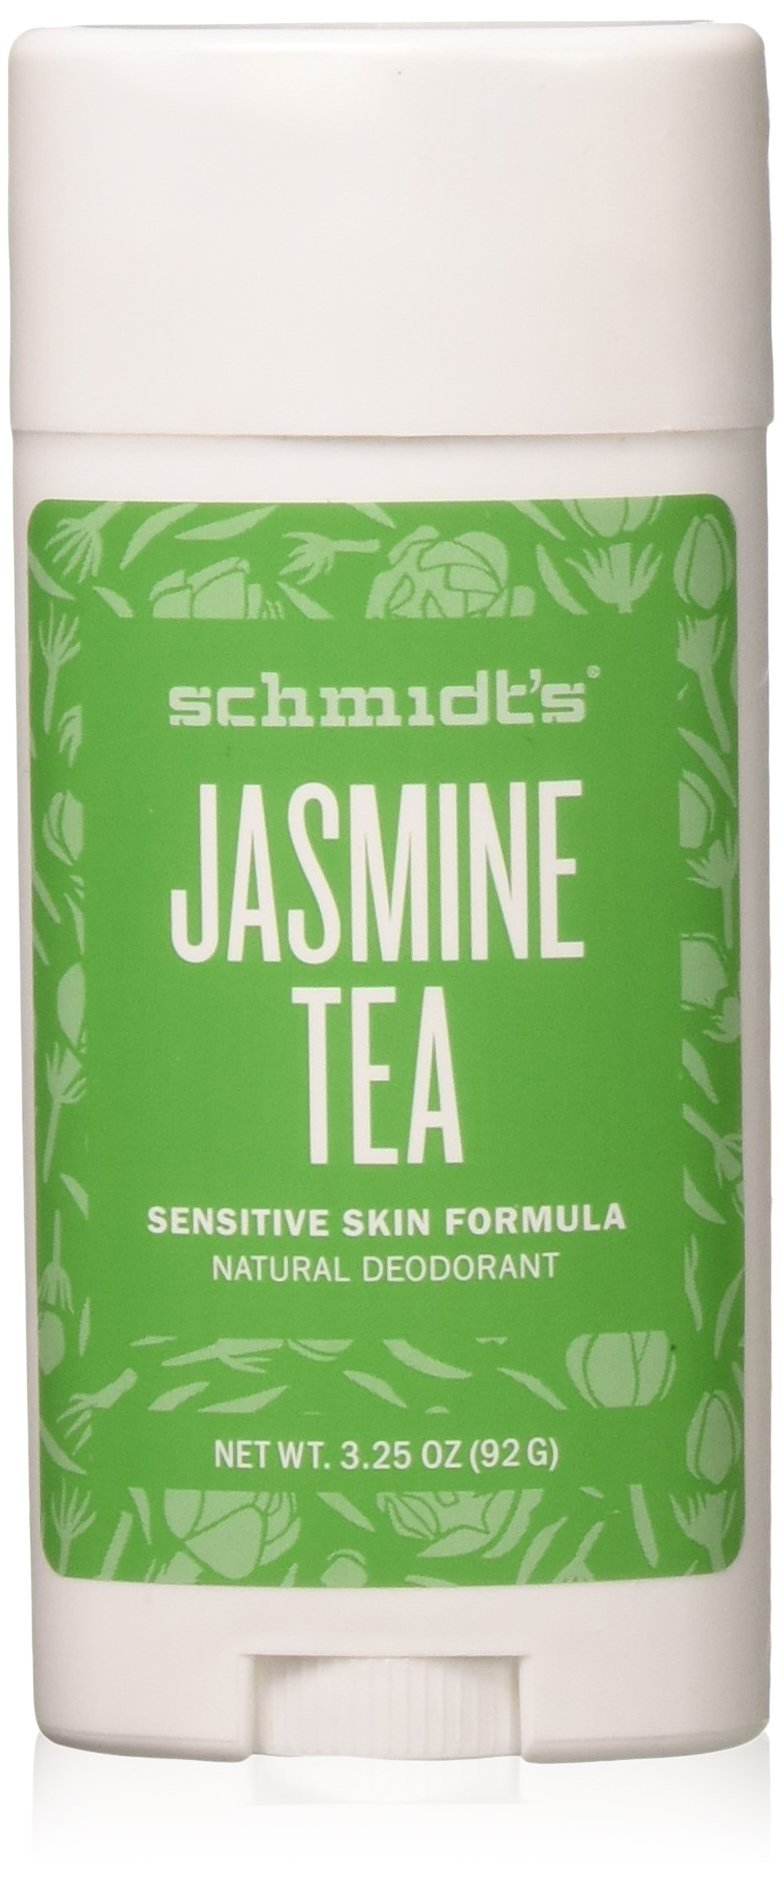 Schmidt's Natural Deodorant for Sensitive Skin - Jasmine Tea, 3.25 ounces. Stick for Women and Men